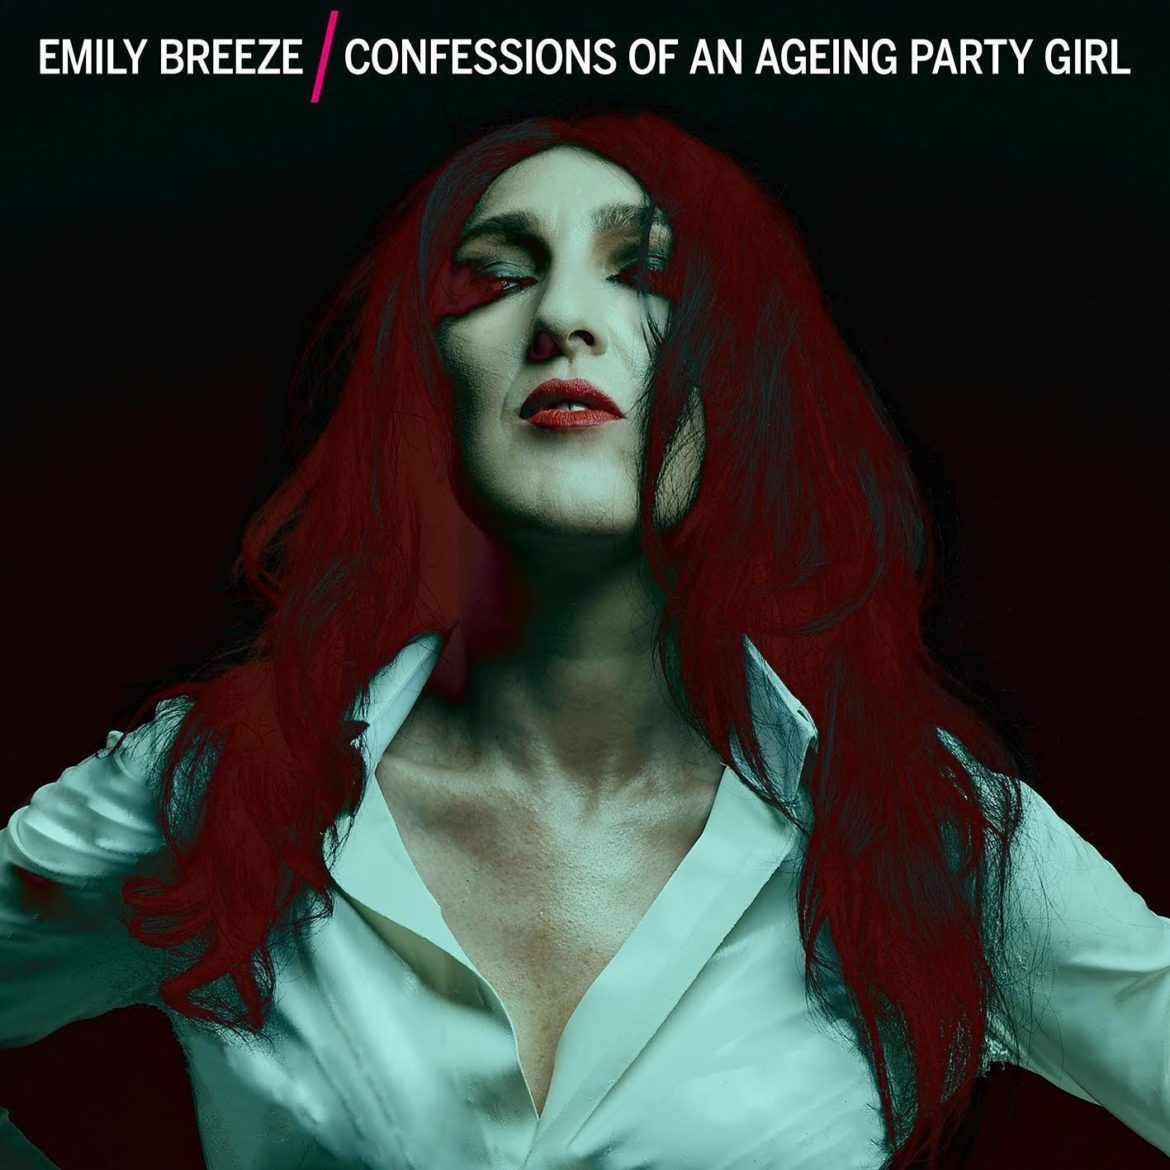 NEWS: Emily Breeze unveils new video 'Confessions of an Ageing Party Girl'